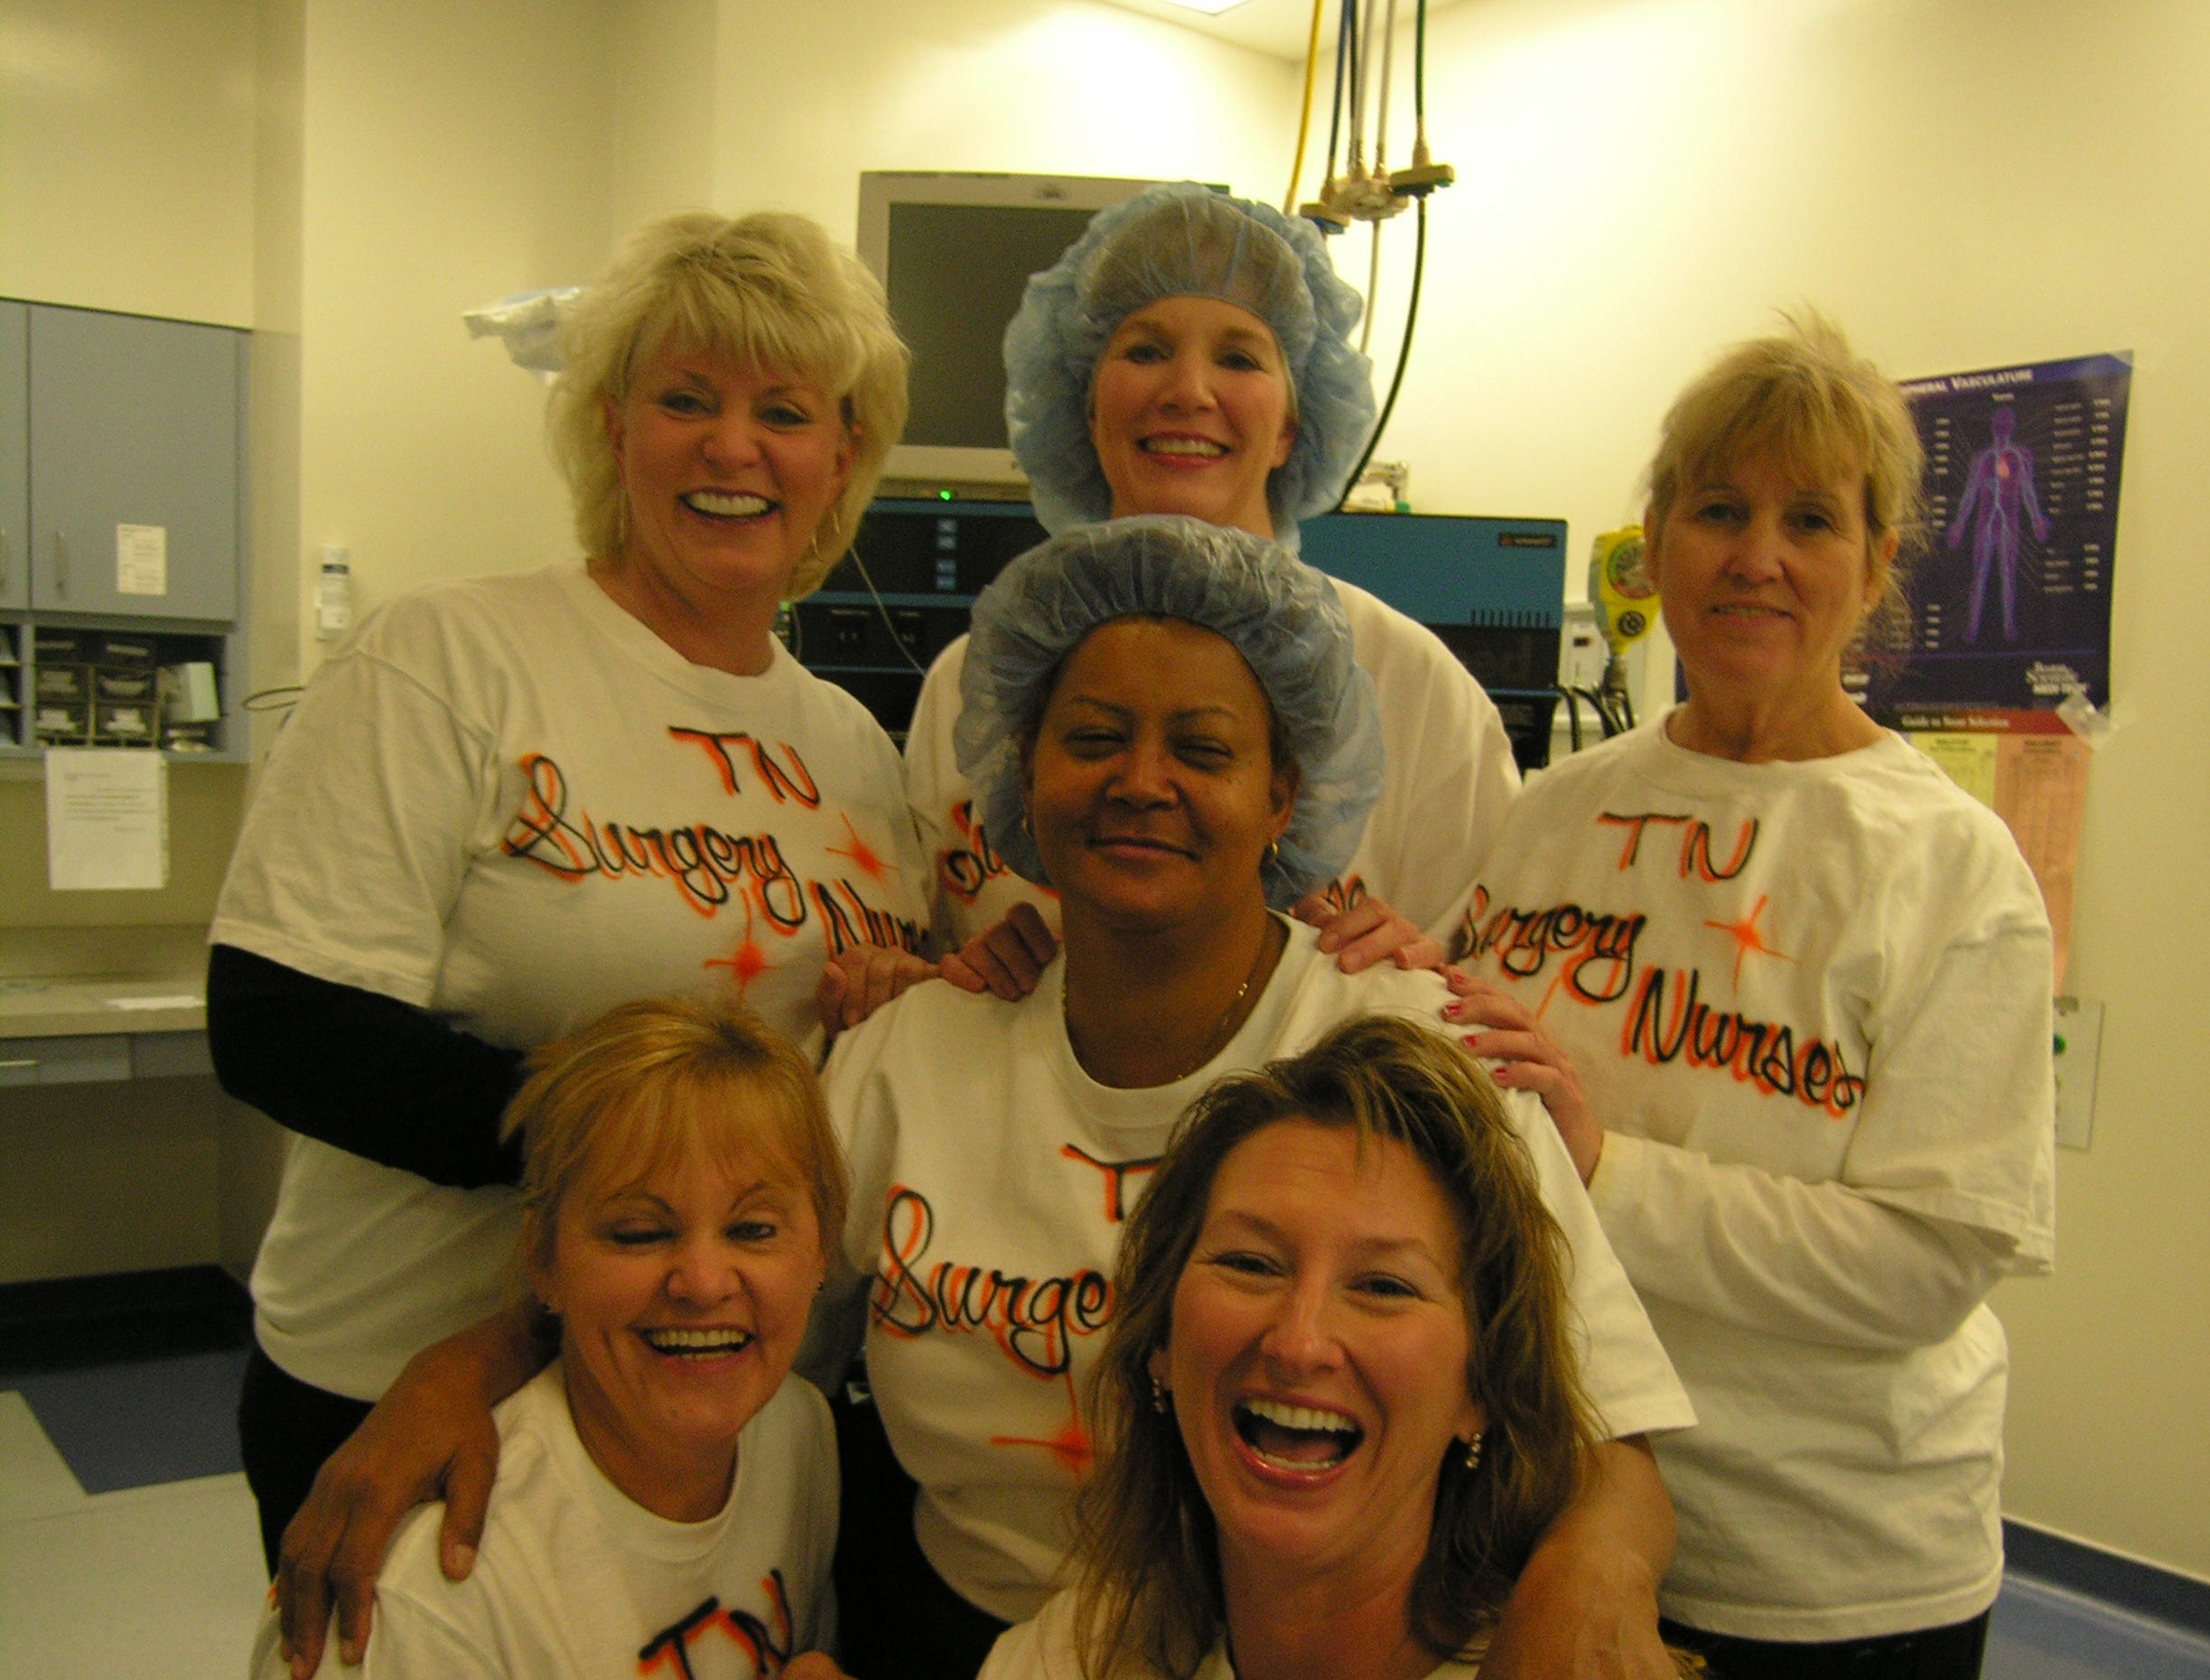 A group of St. MaryÕs Medical Center surgical nurses that have been planning ÒgirlsÕ tripsÓ together for about six or seven years spent their latest one in Southern California, where they got to go to the Price is Right TV show. They all auditioned for the show and Charlene Minefield actually got to be a contestant. From left, kneeling are Donna Turner and Tina Maggard, in the center is Minefield and behind her are Melody Vineyard, Glenna Guynes and Geneva Wise.